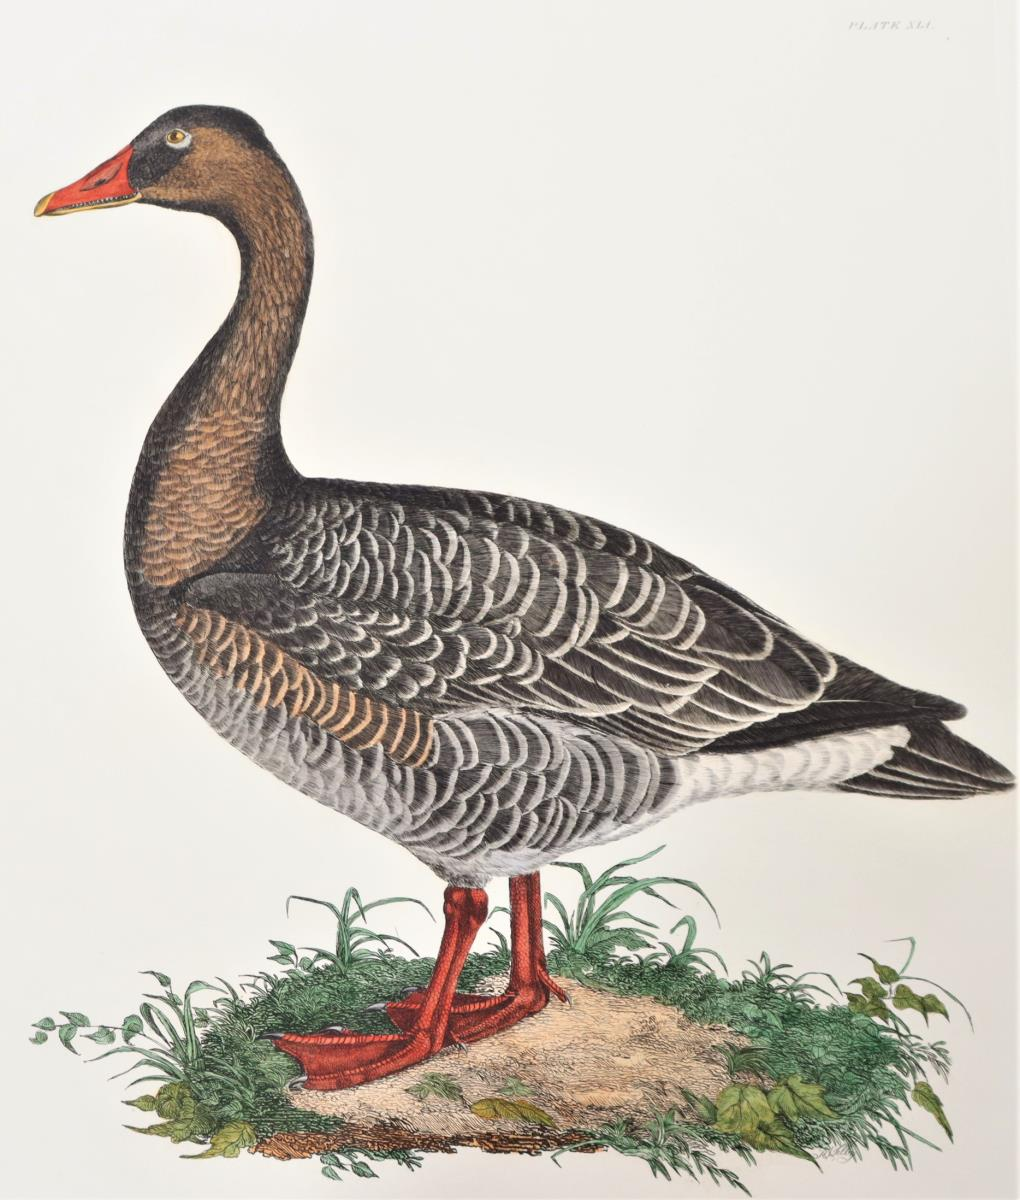 P J Selby, Hand-Colored Engraving, Wild Goose - Image 3 of 4